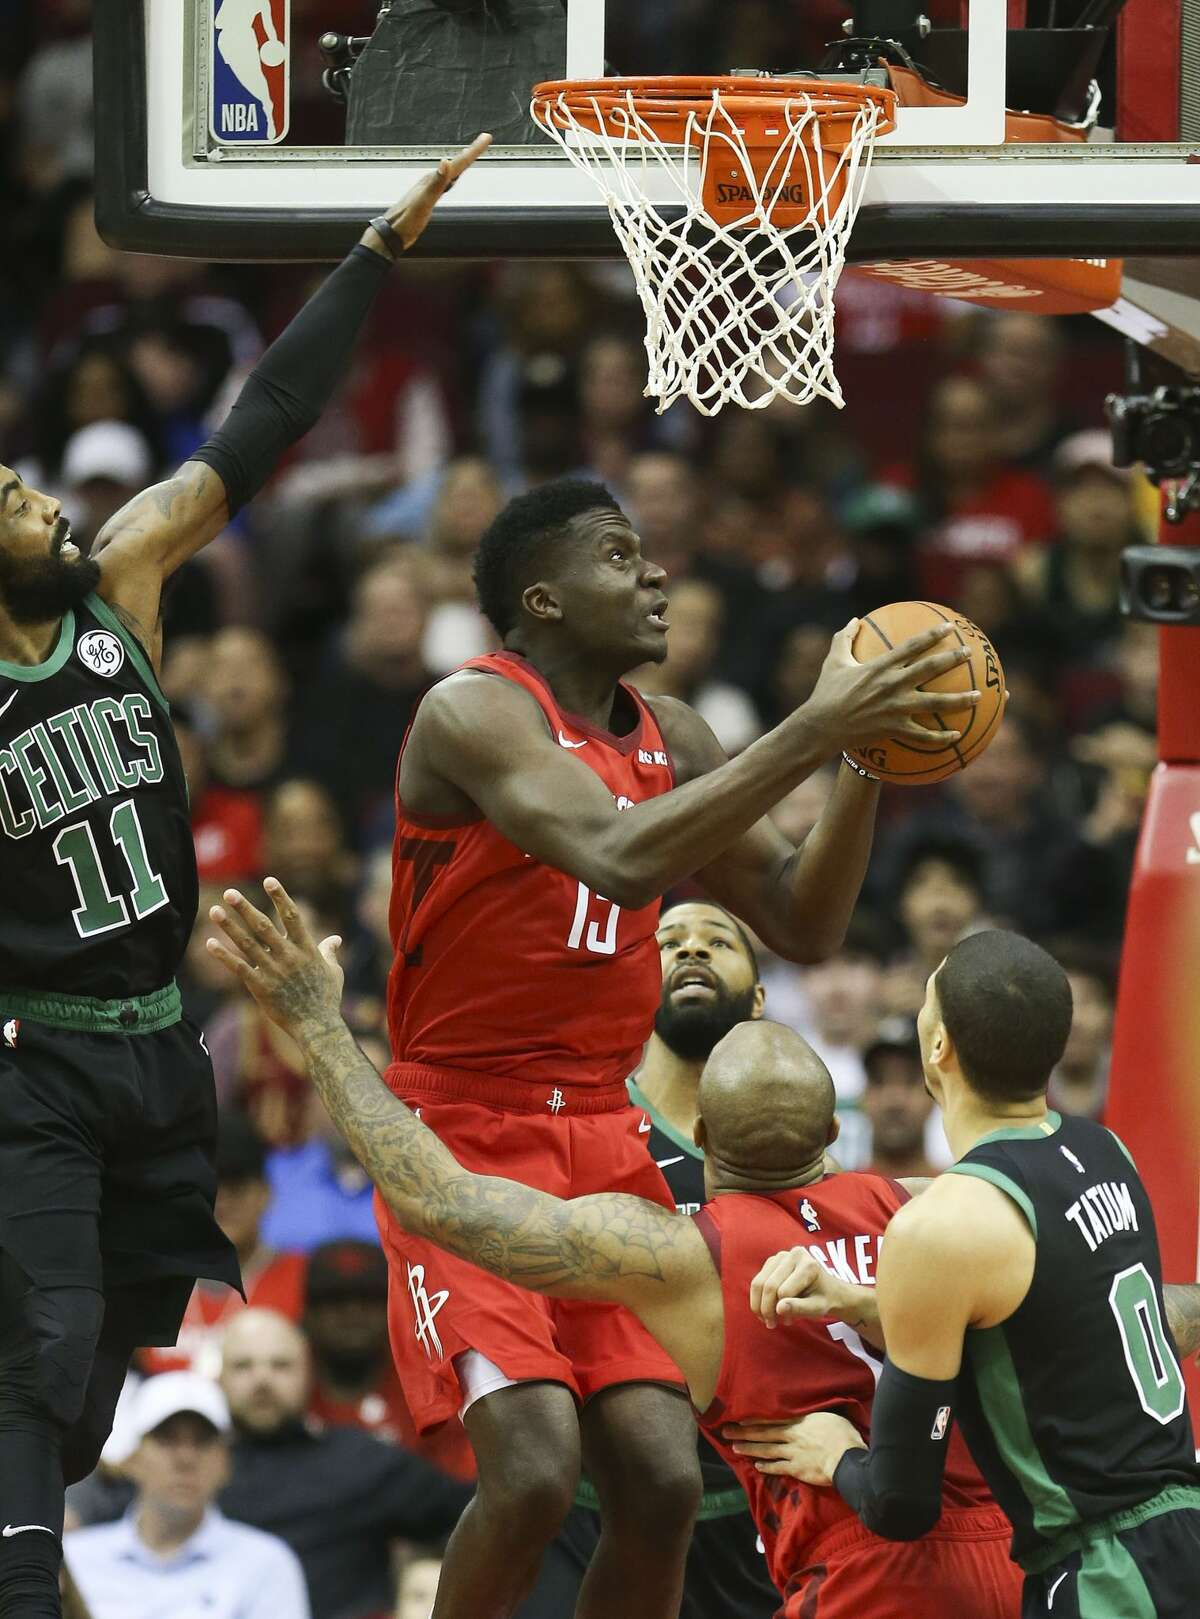 Houston Rockets center Clint Capela (15) goes up for a reverse layup against Boston Celtics guard Kyrie Irving (11) in the first half of NBA game action at the Toyota Center on Thursday, Dec. 27, 2018 in Houston. Capela had 38 points in the Rockets' 127-113 win.